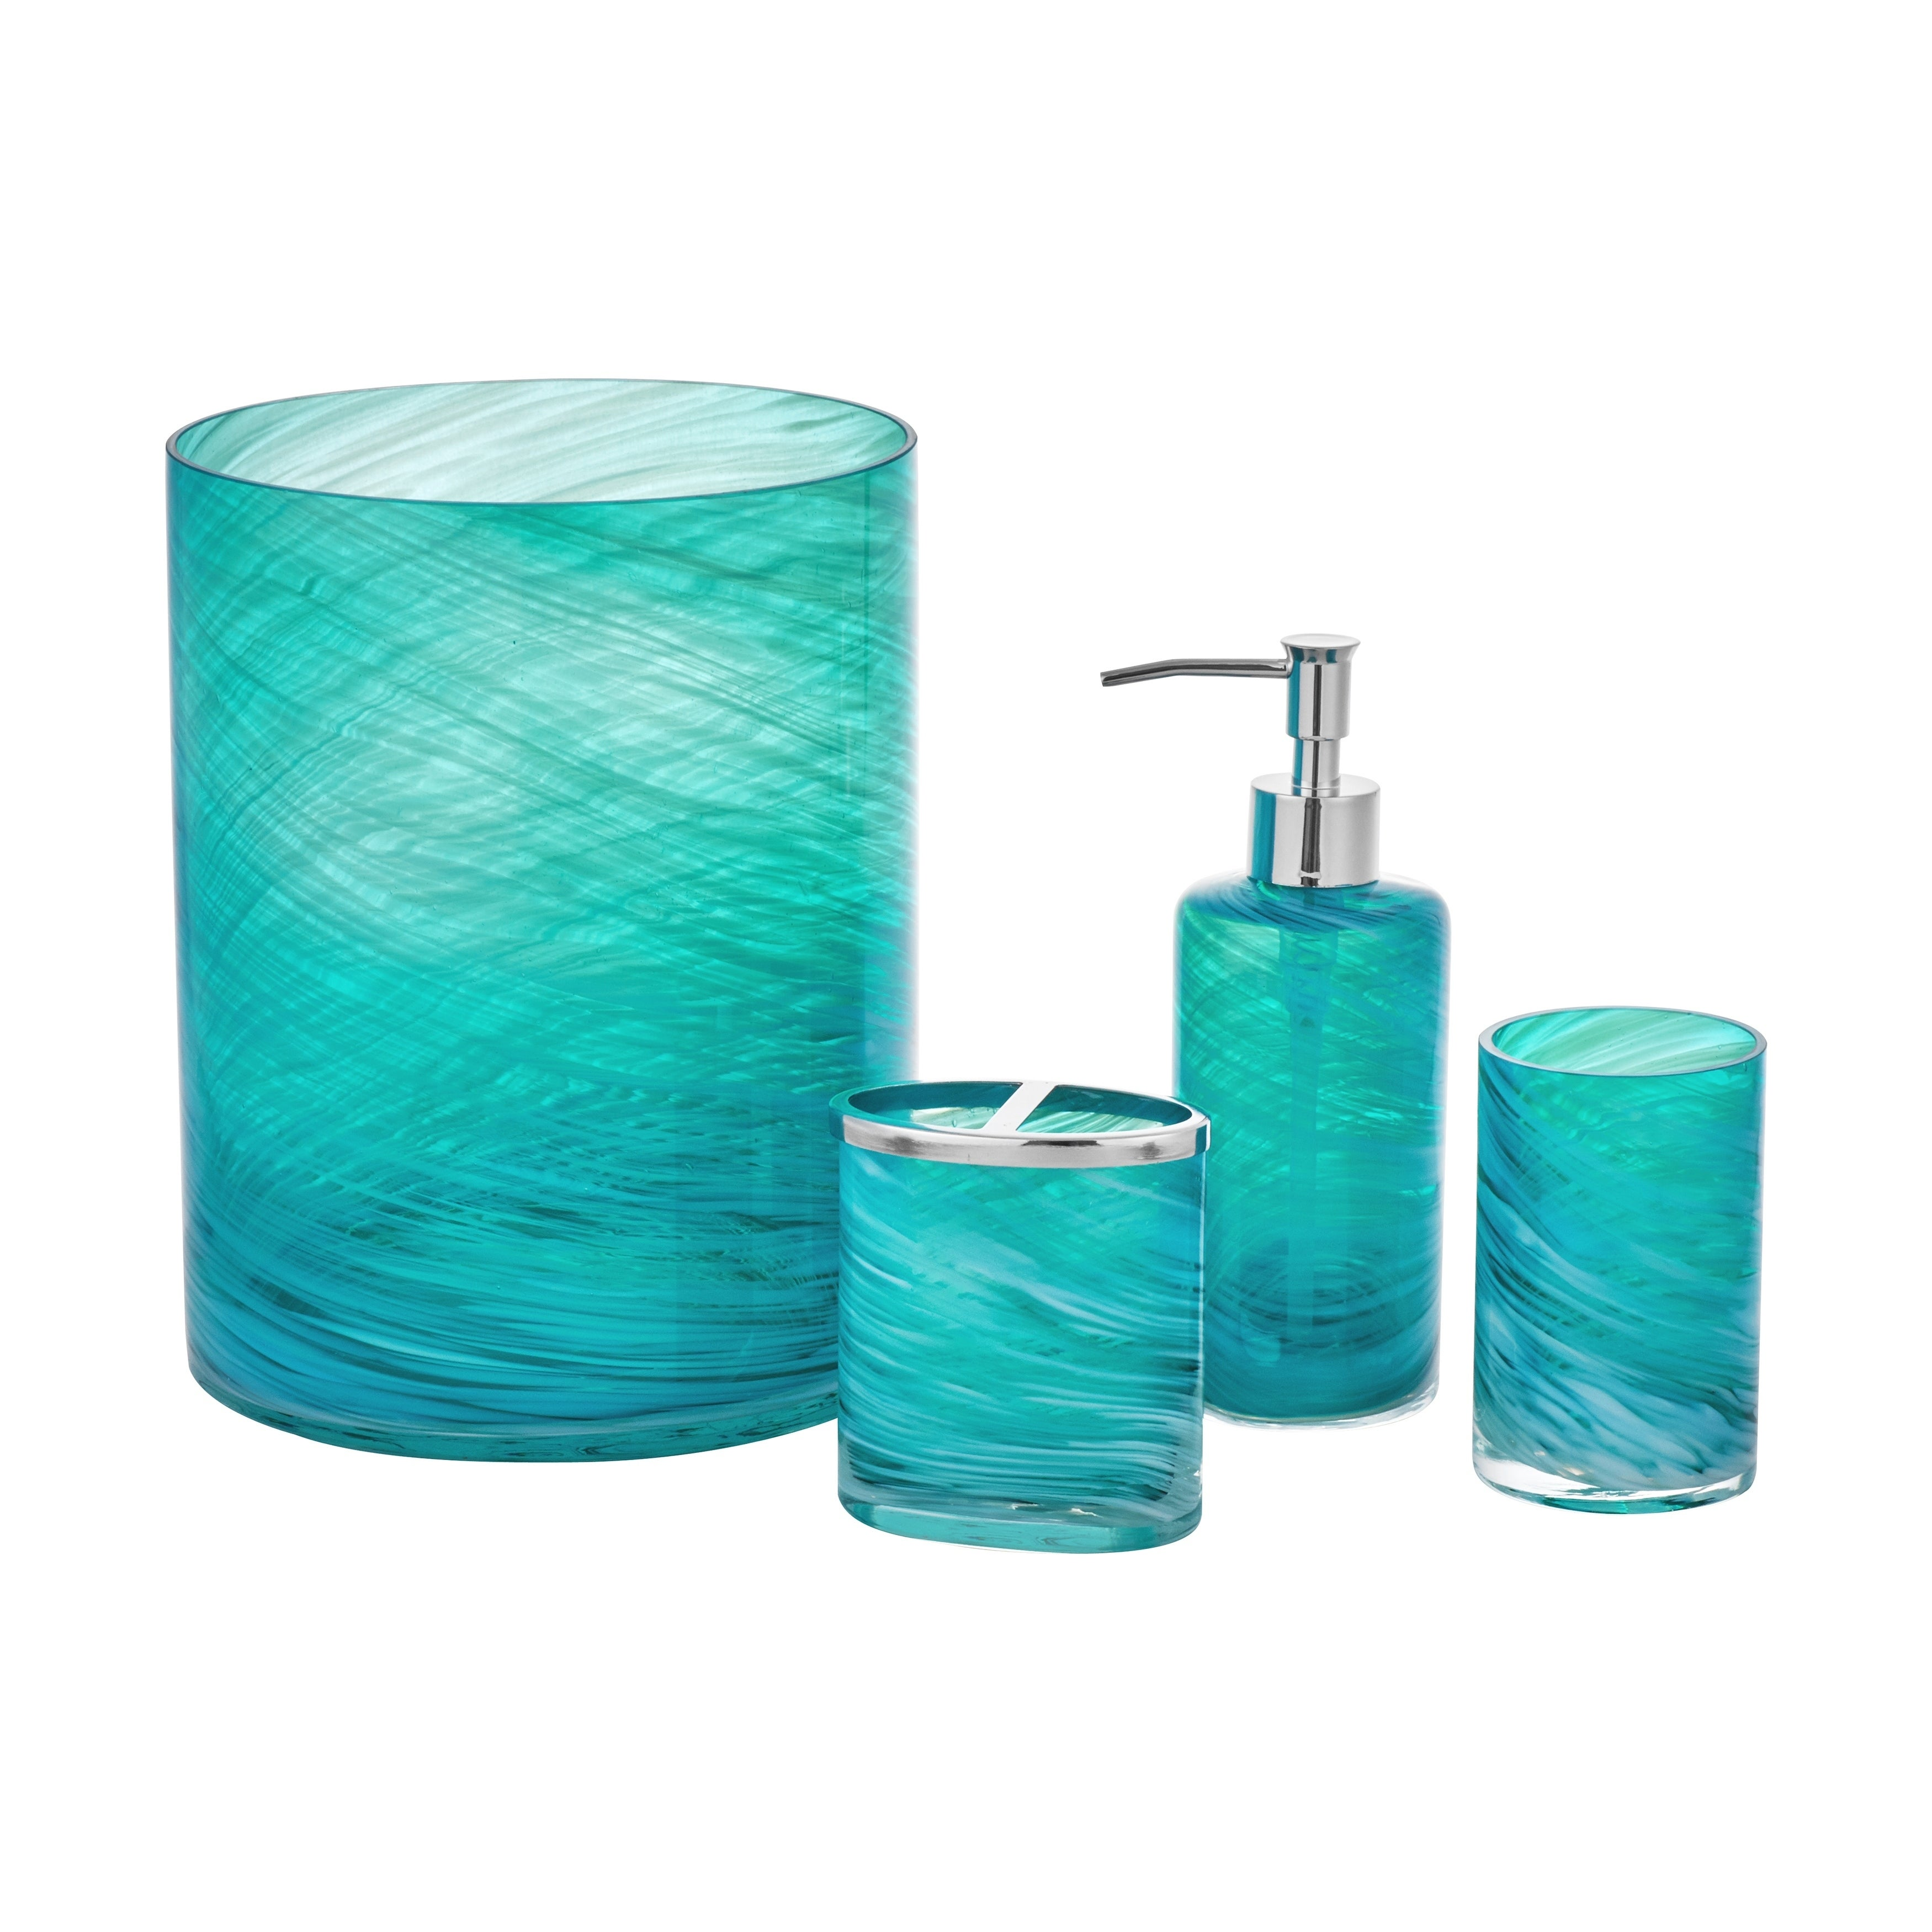 Shop Five Queens Court Caribbean Reef Handmade Glass Bathroom Accessories    Free Shipping On Orders Over $45   Overstock.com   20555029